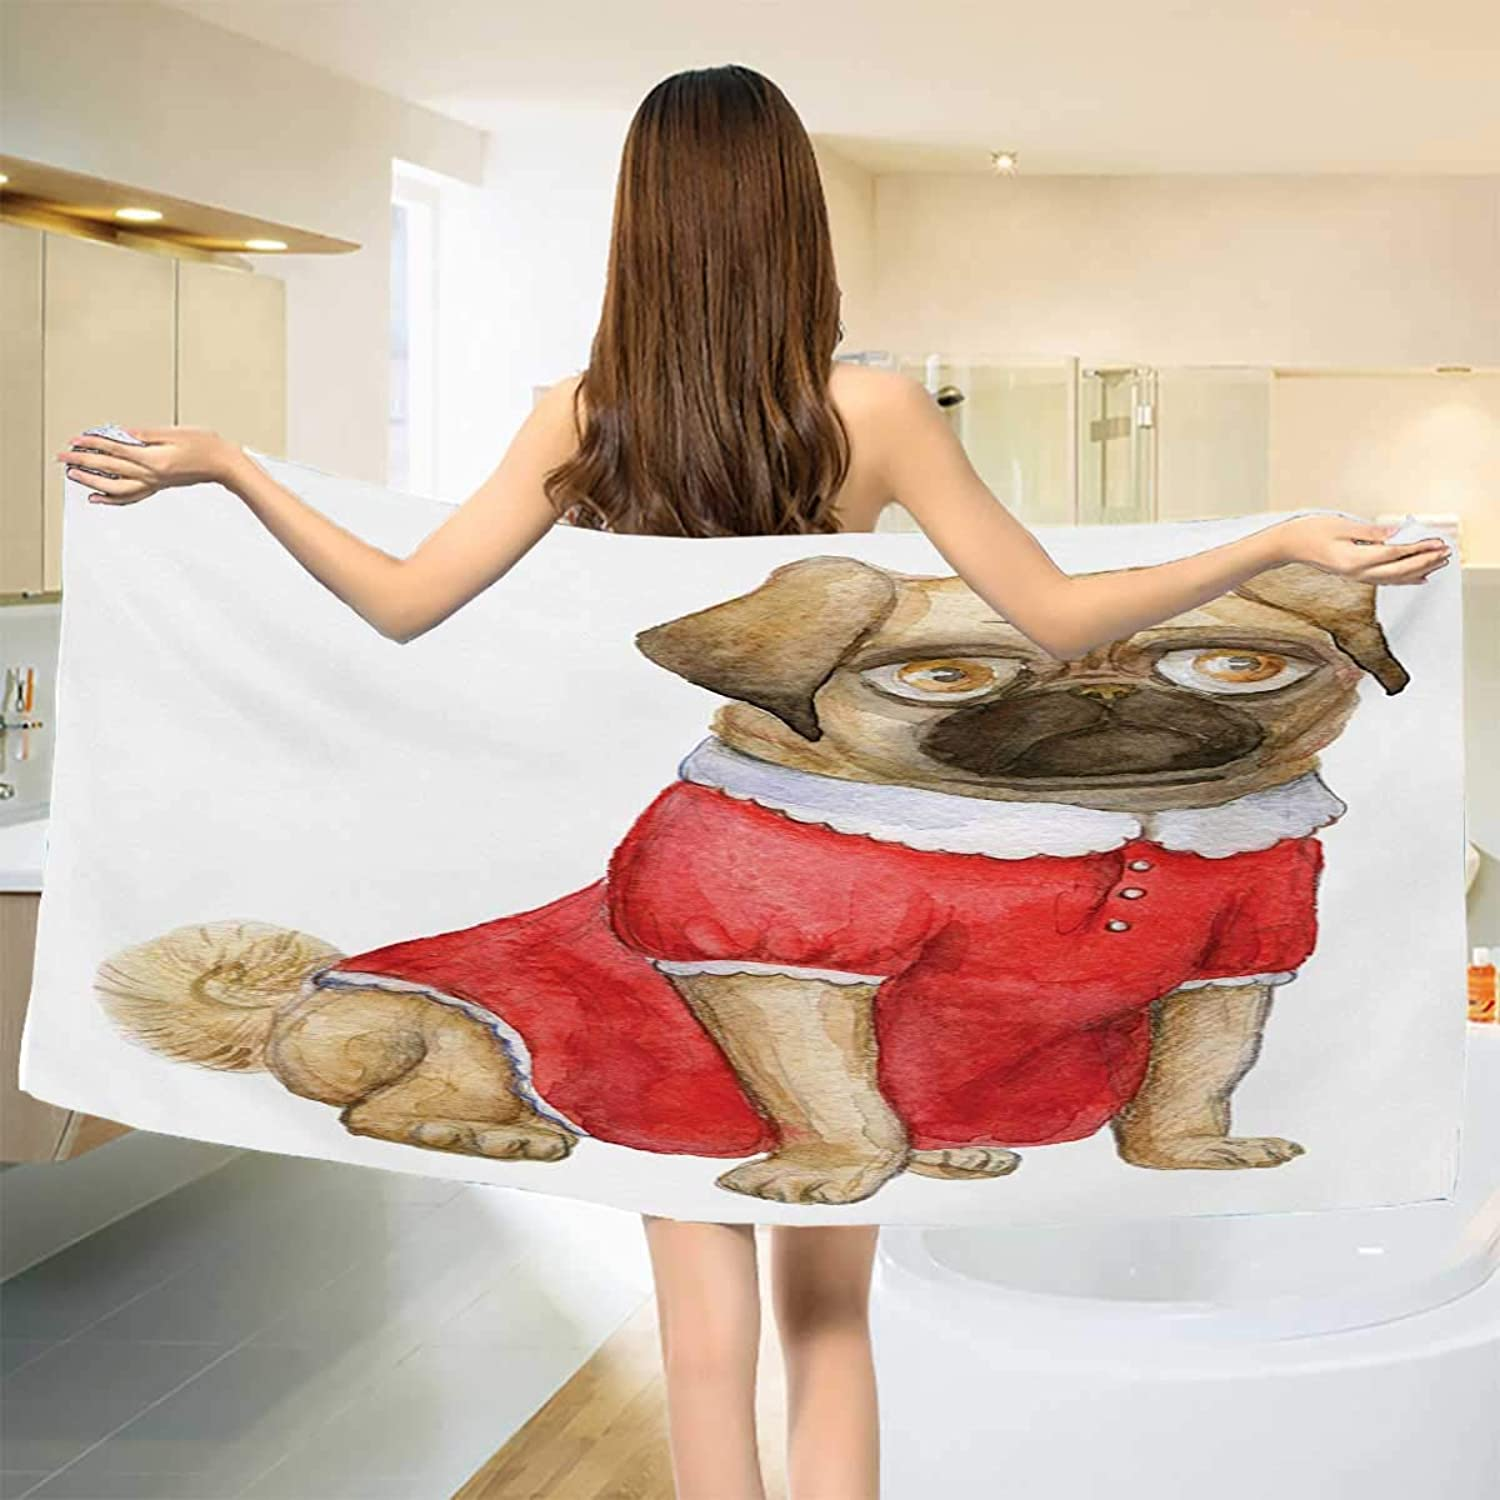 Chaneyhouse Pug,Bath Towel,Cute Dog in Red Dress Animal Cartoon Style Design Funny Pet Picture Print,Bathroom Towels,Pale Brown Red Brown Size  W 27.5  x L 55